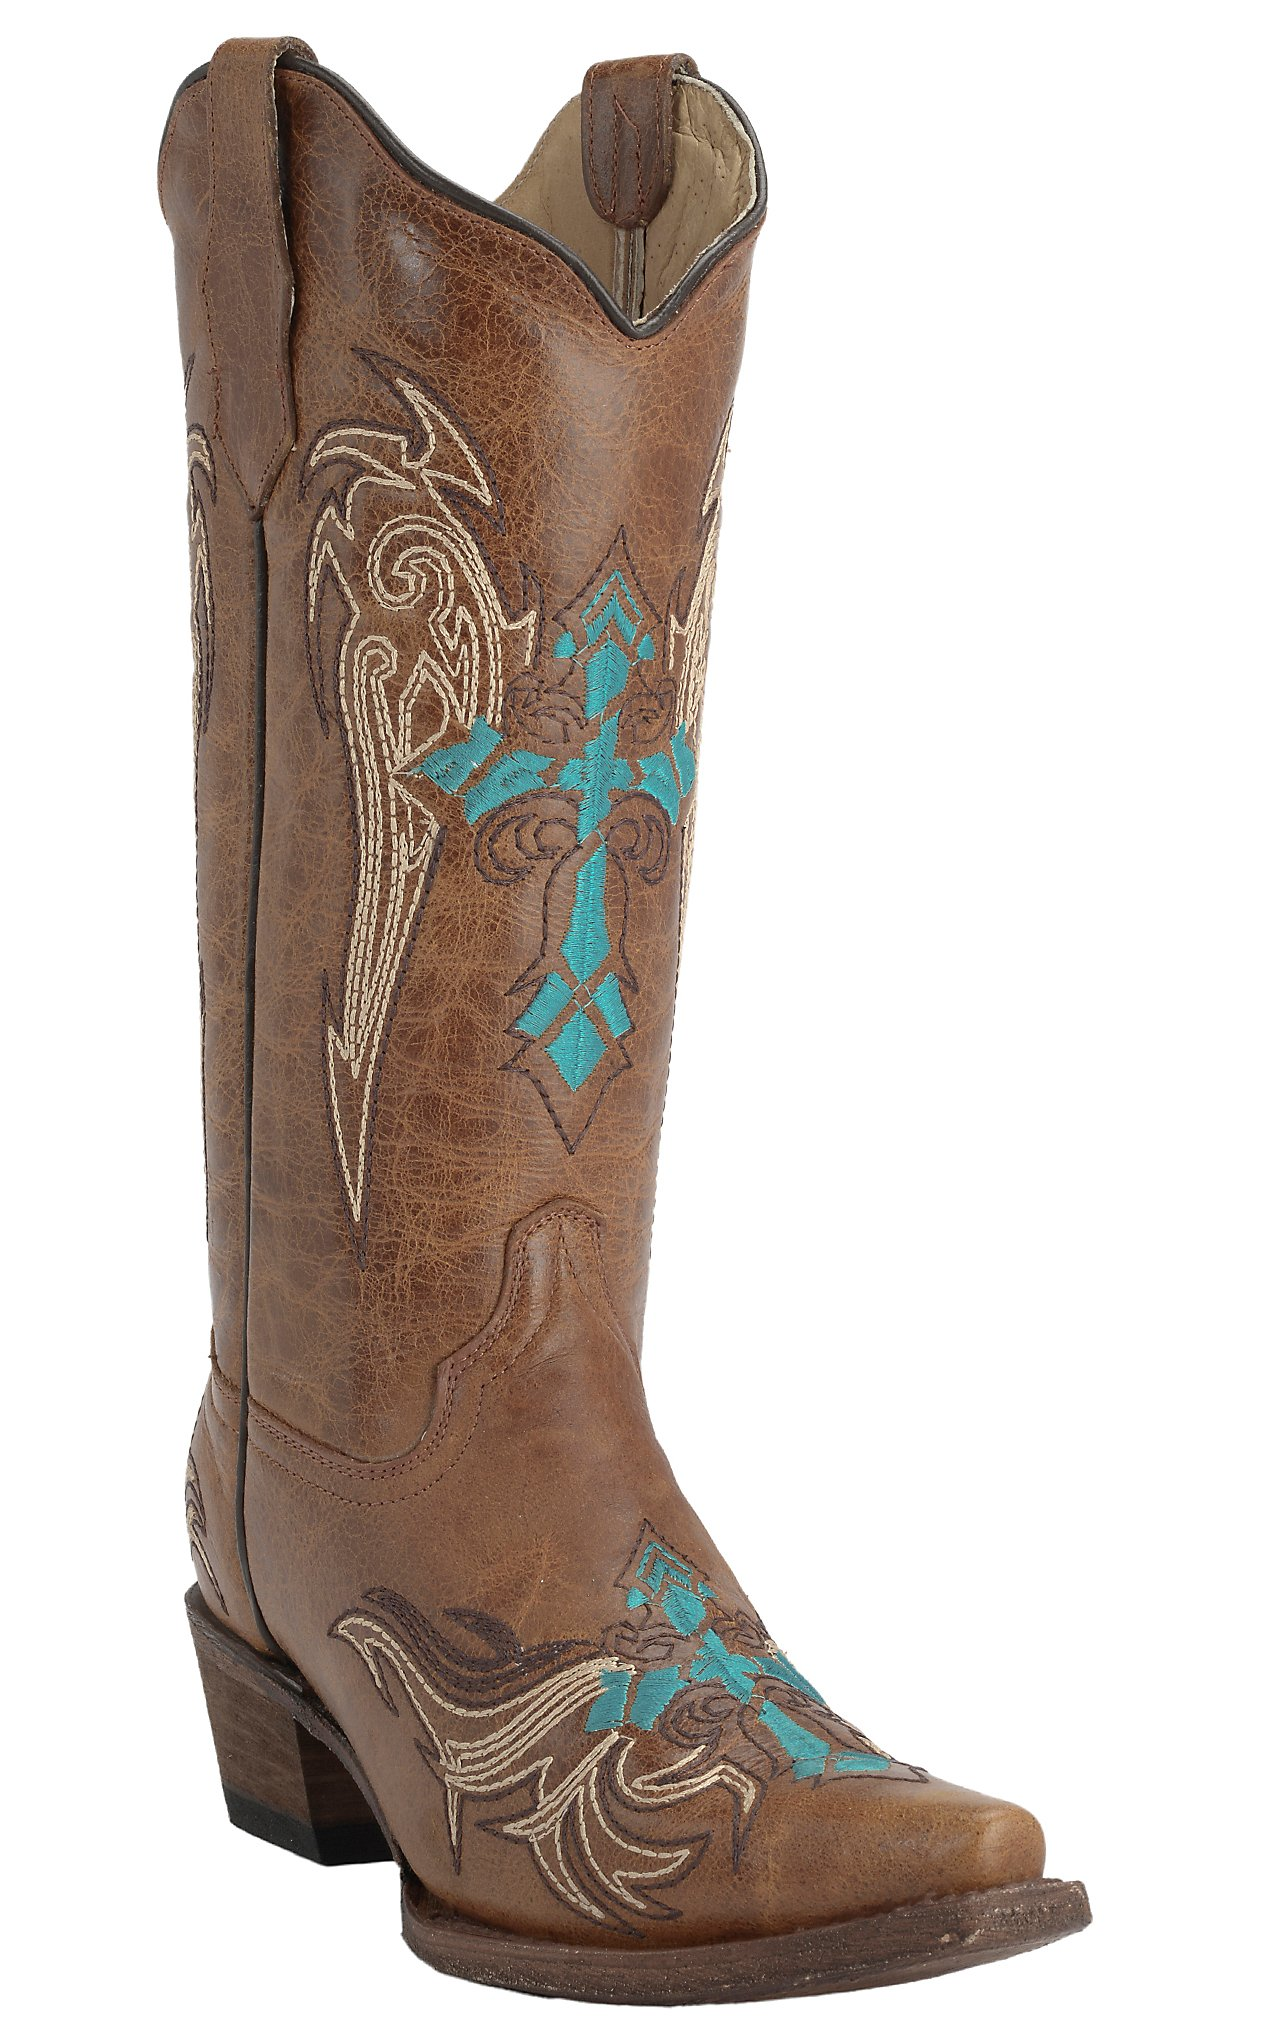 Circle G by Corral Women s Honey Frontier with Turquoise   Brown Winged  Cross Embroidery Snip Toe Western Boots  75a5aedb3b